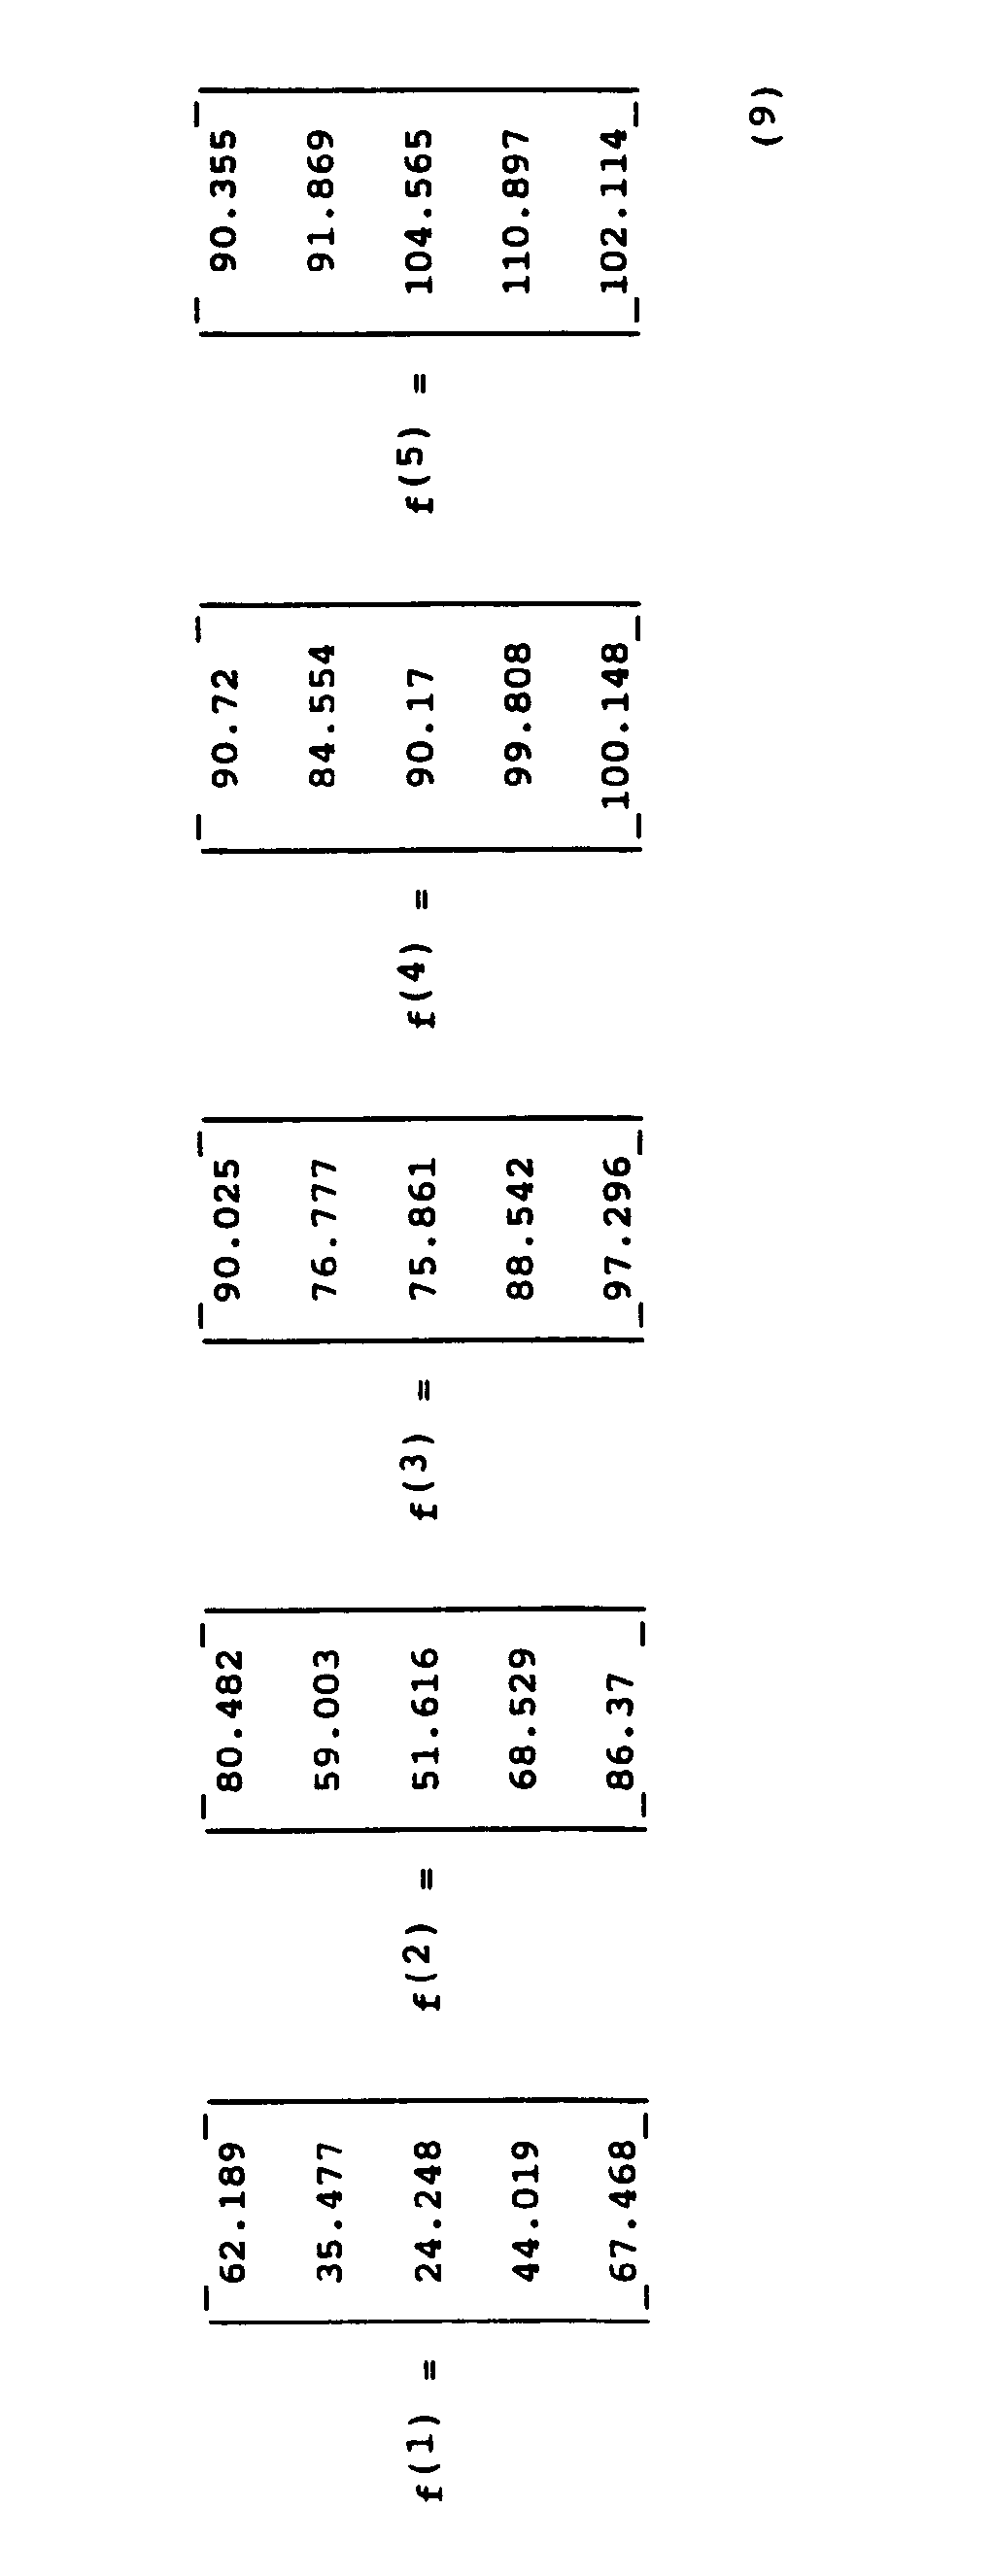 Ep0545641a2 Determining Pneumatic Tire Pressure And Or Vehicle Temperature Load Force 038 Other Sensors Figure Imgb0011